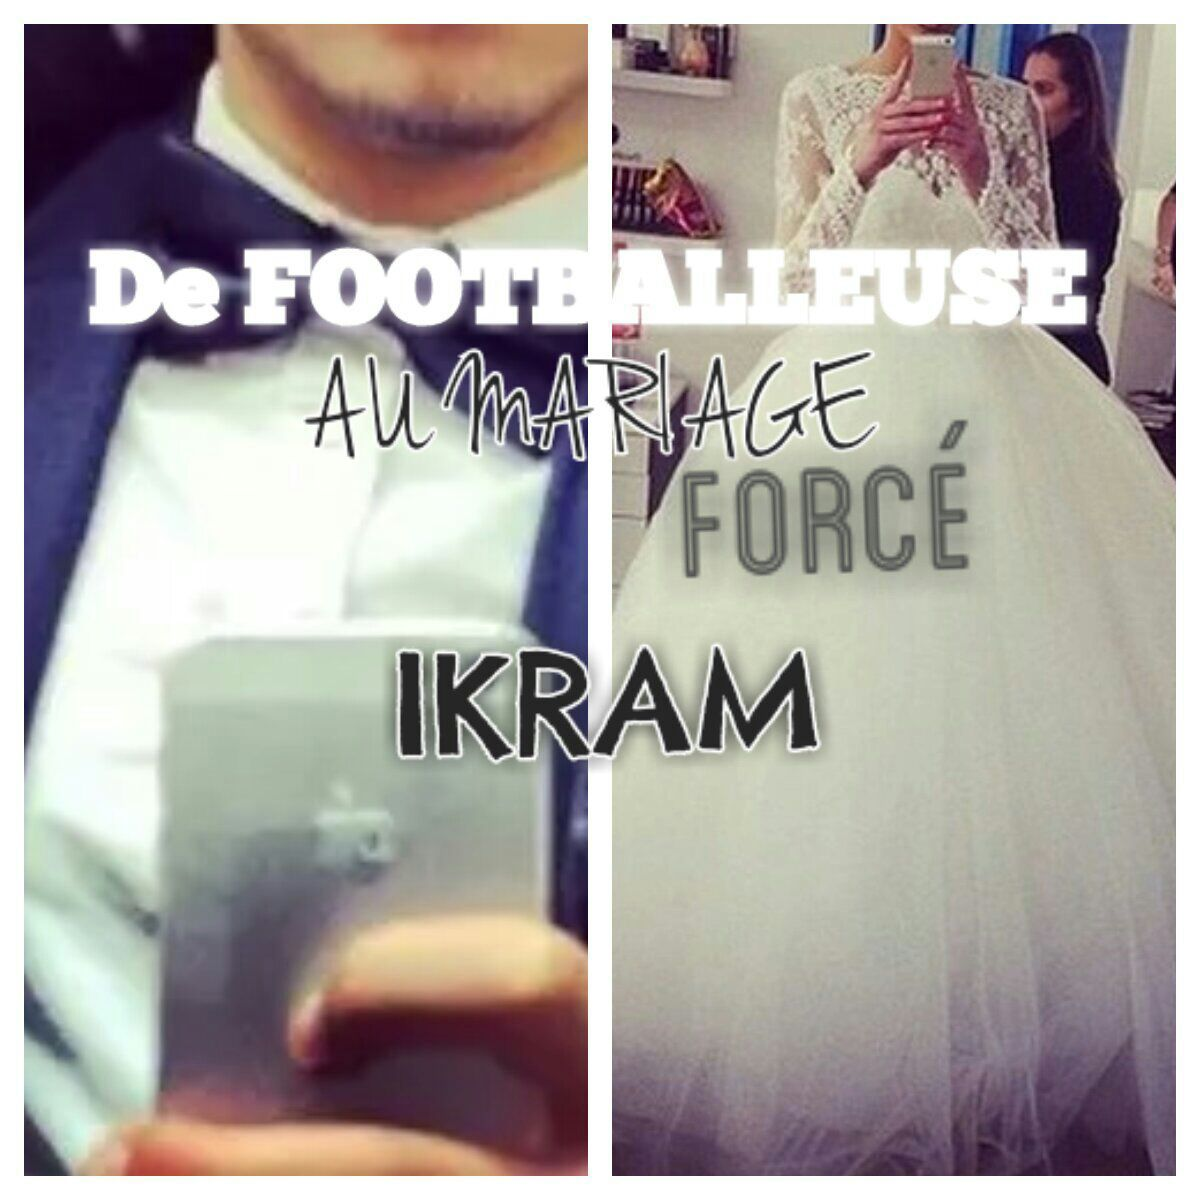 amour chronique foot footballeuse force ikram impossible life love lui mariage maroc mektoub soccer team tess quipe - Chronique Mariage Forc